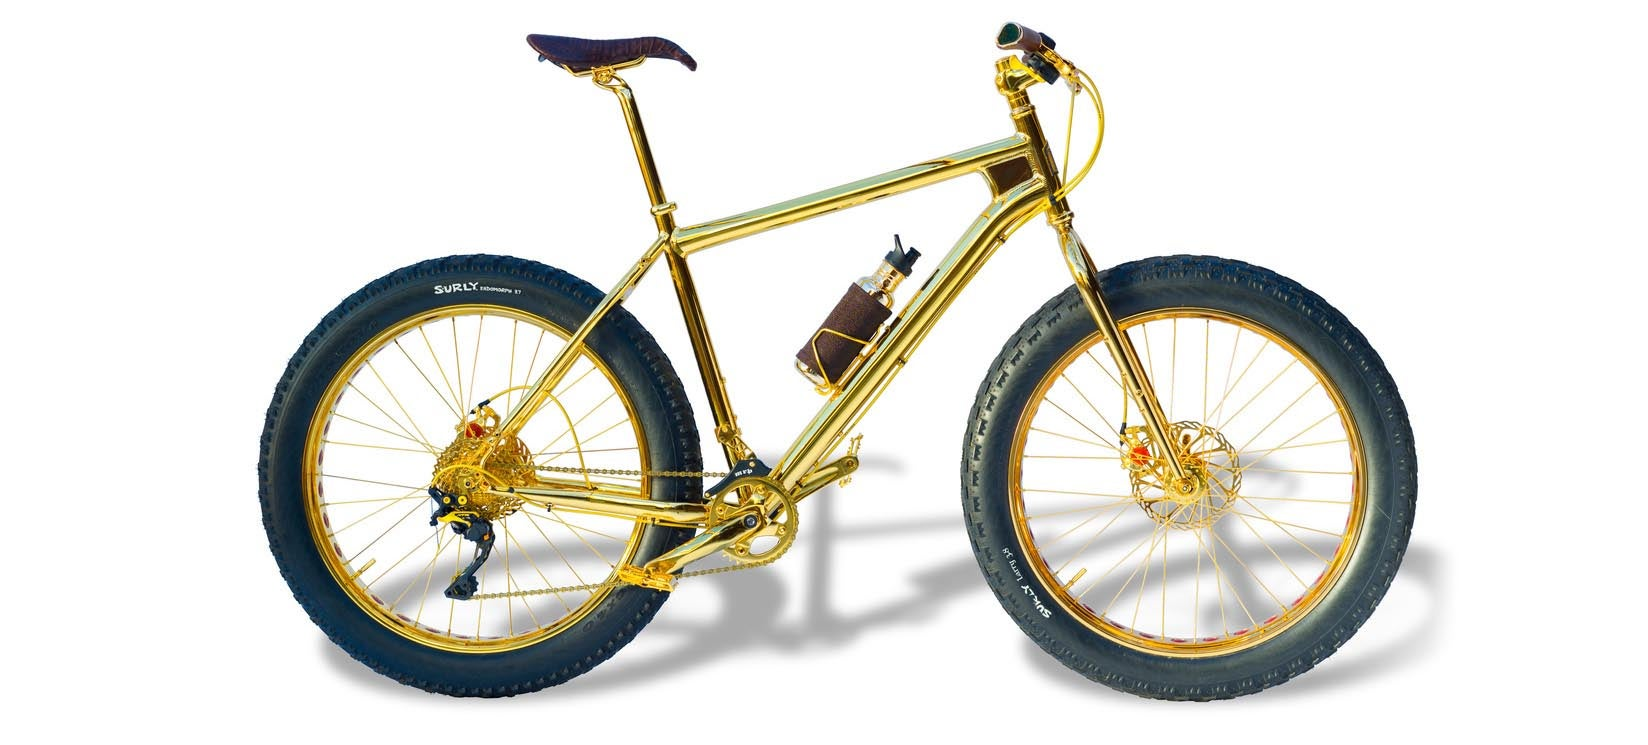 This Gold-Plated Bike Is Real and Costs $US1,000,000